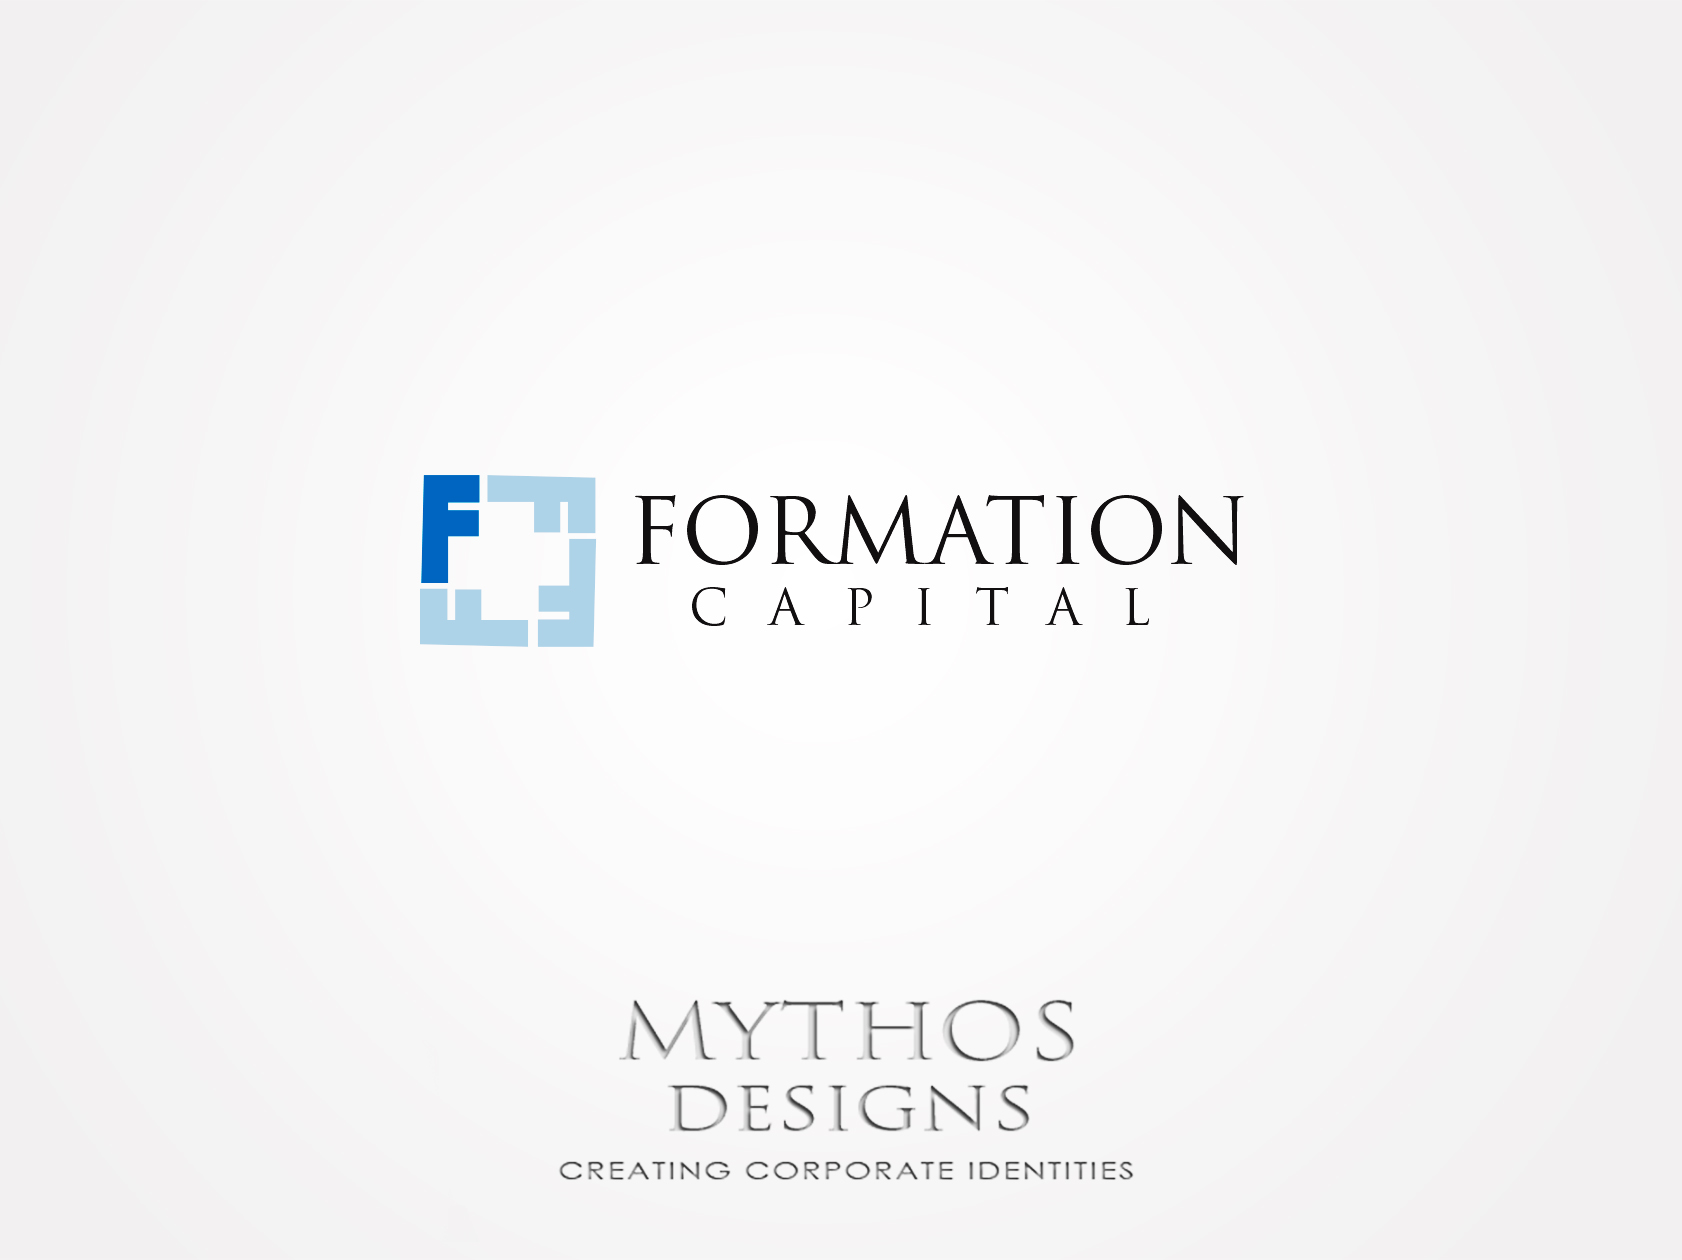 Logo Design by Mythos Designs - Entry No. 63 in the Logo Design Contest Inspiring Logo Design for Formation Capital.